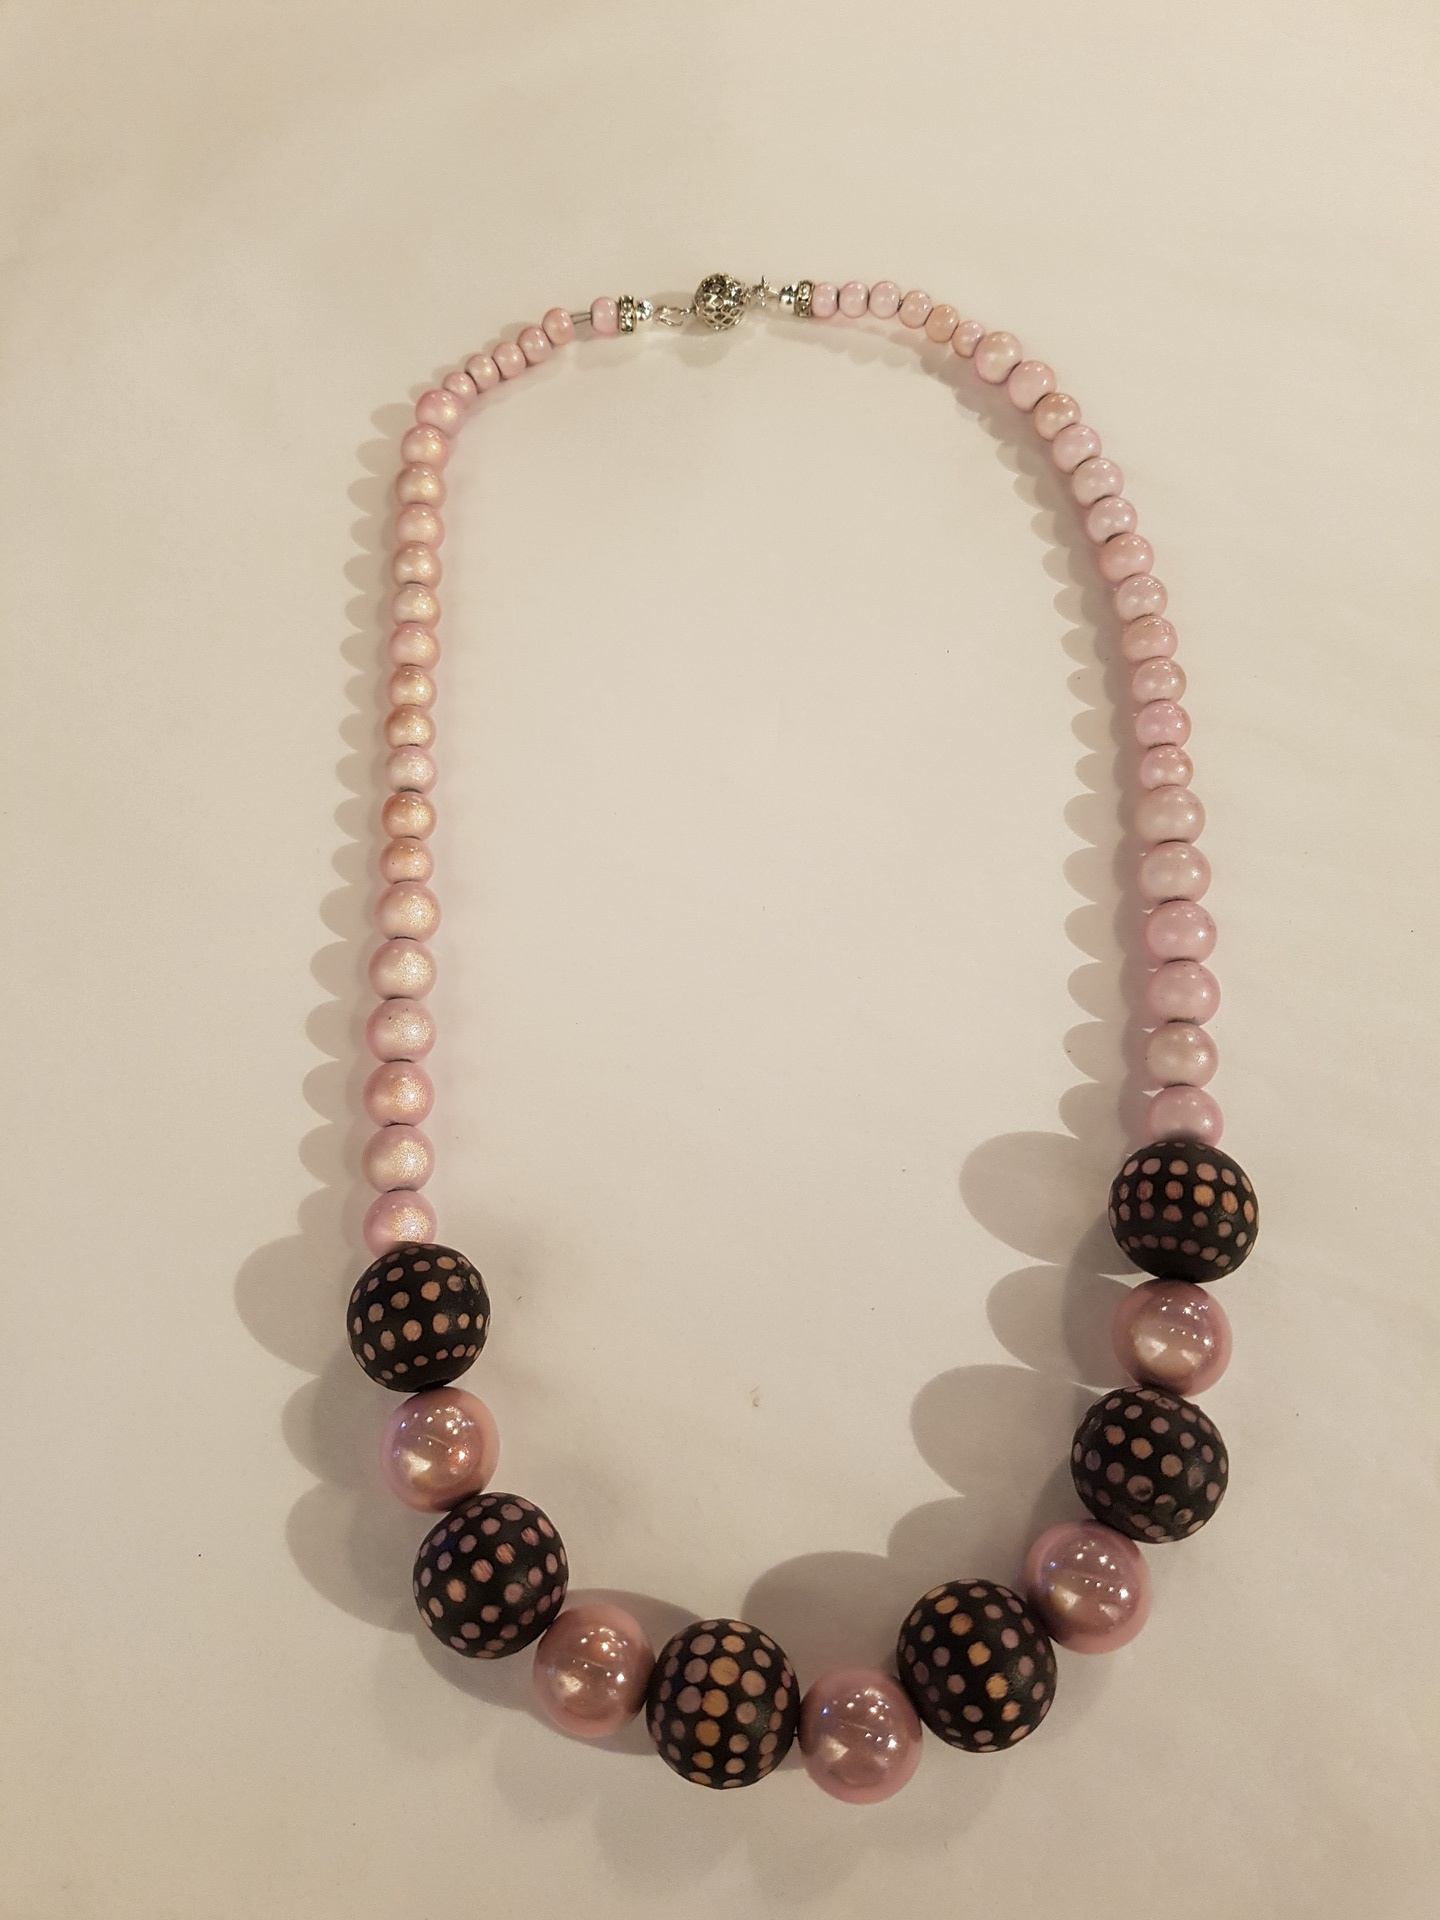 Stunning Pink Pearlescent Necklace